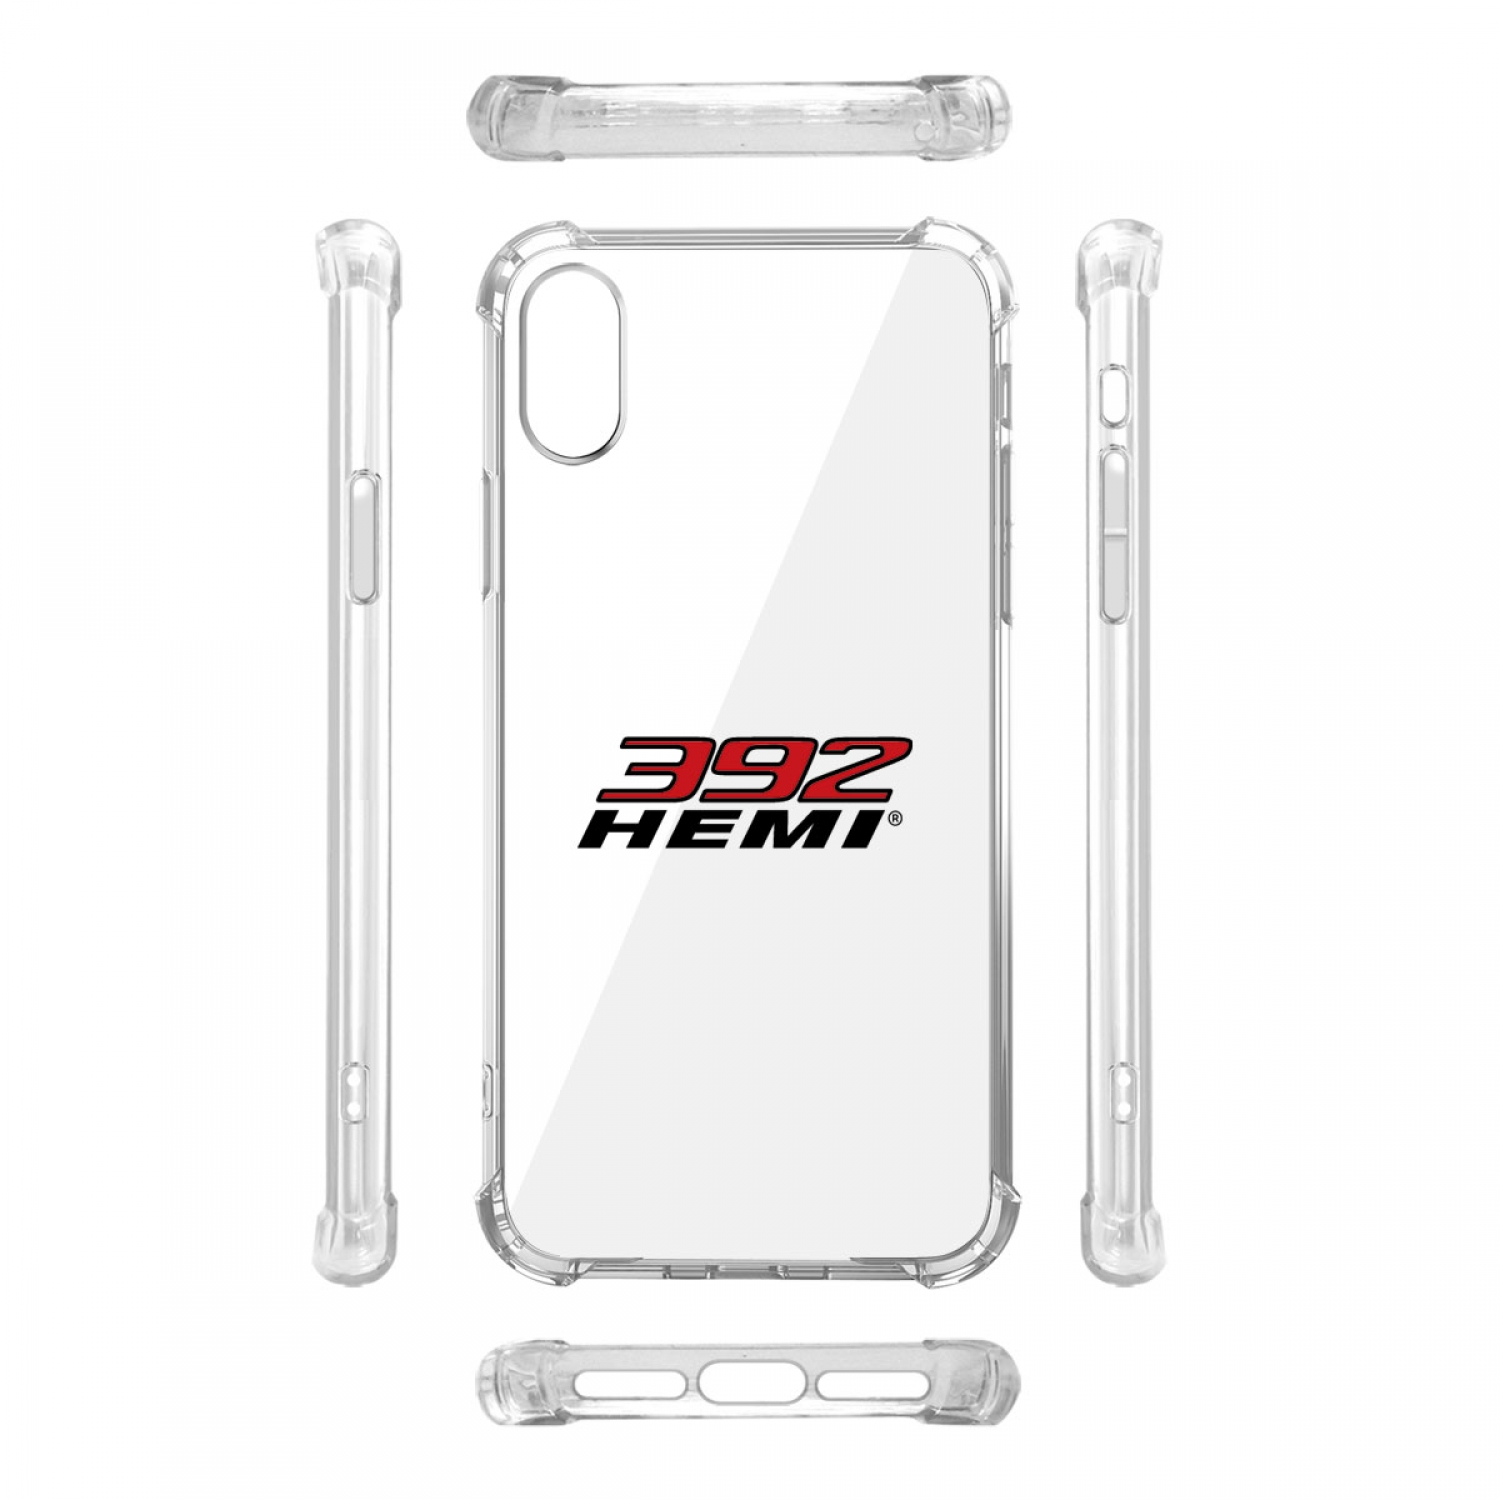 HEMI 392 HP iPhone X Clear TPU Shockproof Cell Phone Case